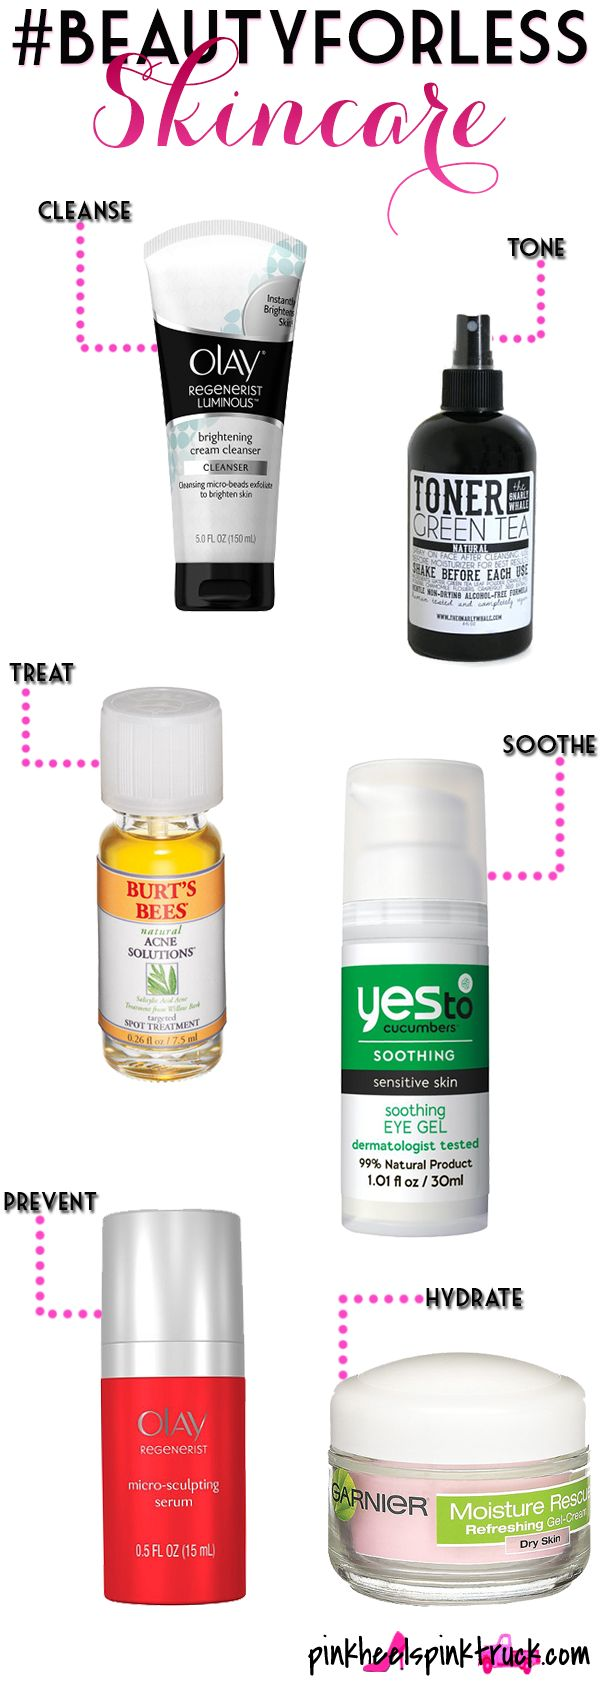 Skin Care Beauty for Less | Affordable skin care products you should try out. #youresopretty